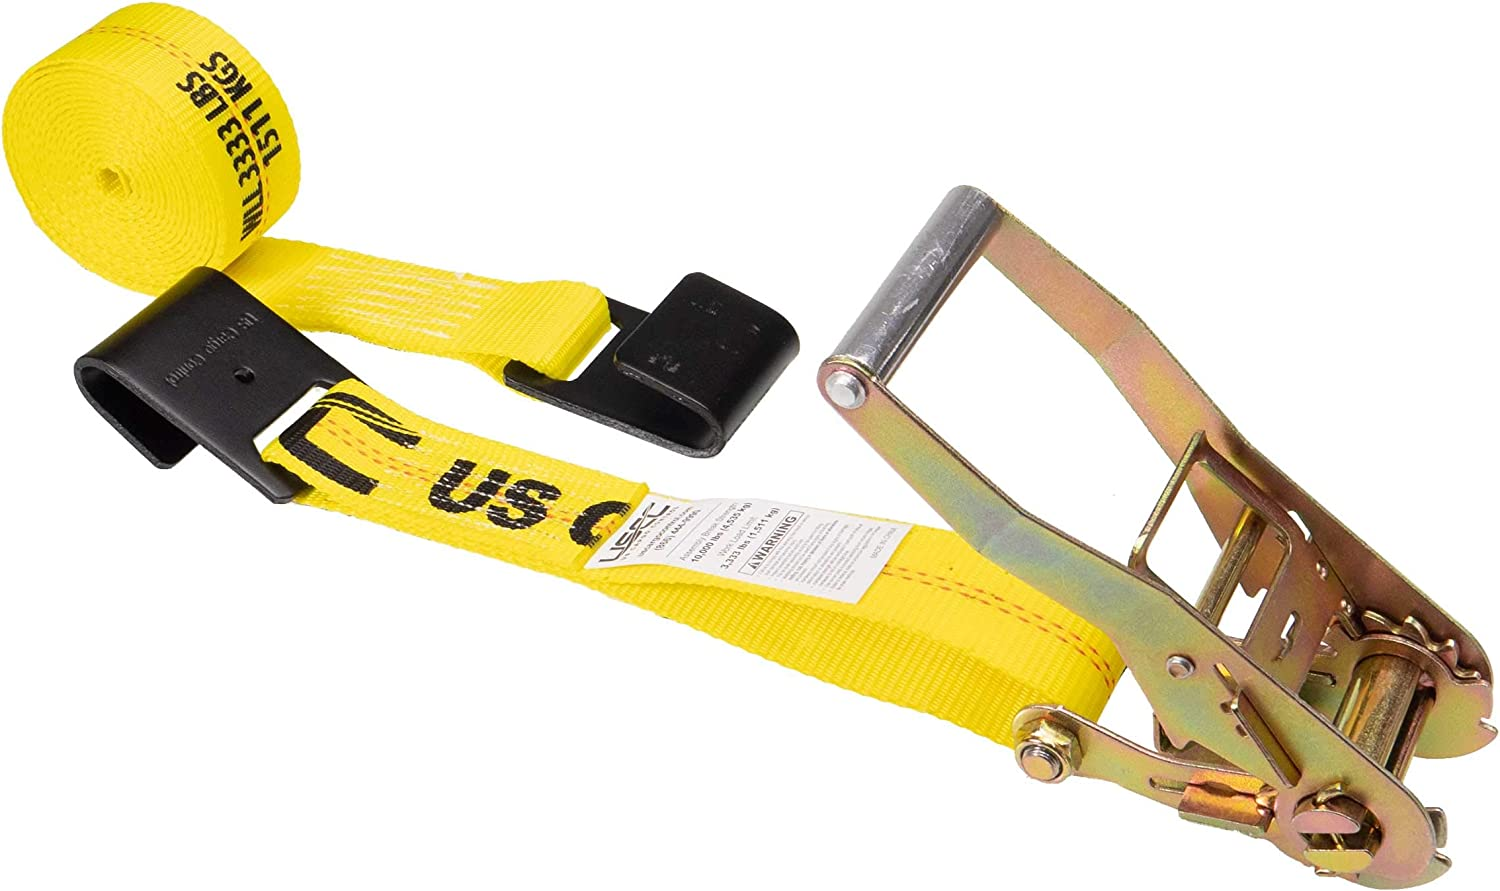 Utility Docks Two Ratchet Strap Tie-Downs Marinas 2 x 27 Heavy-Duty Flat Hook Trailer Straps Secure Cargo in Flatbed Enclosed Vans Trucks at Warehouses